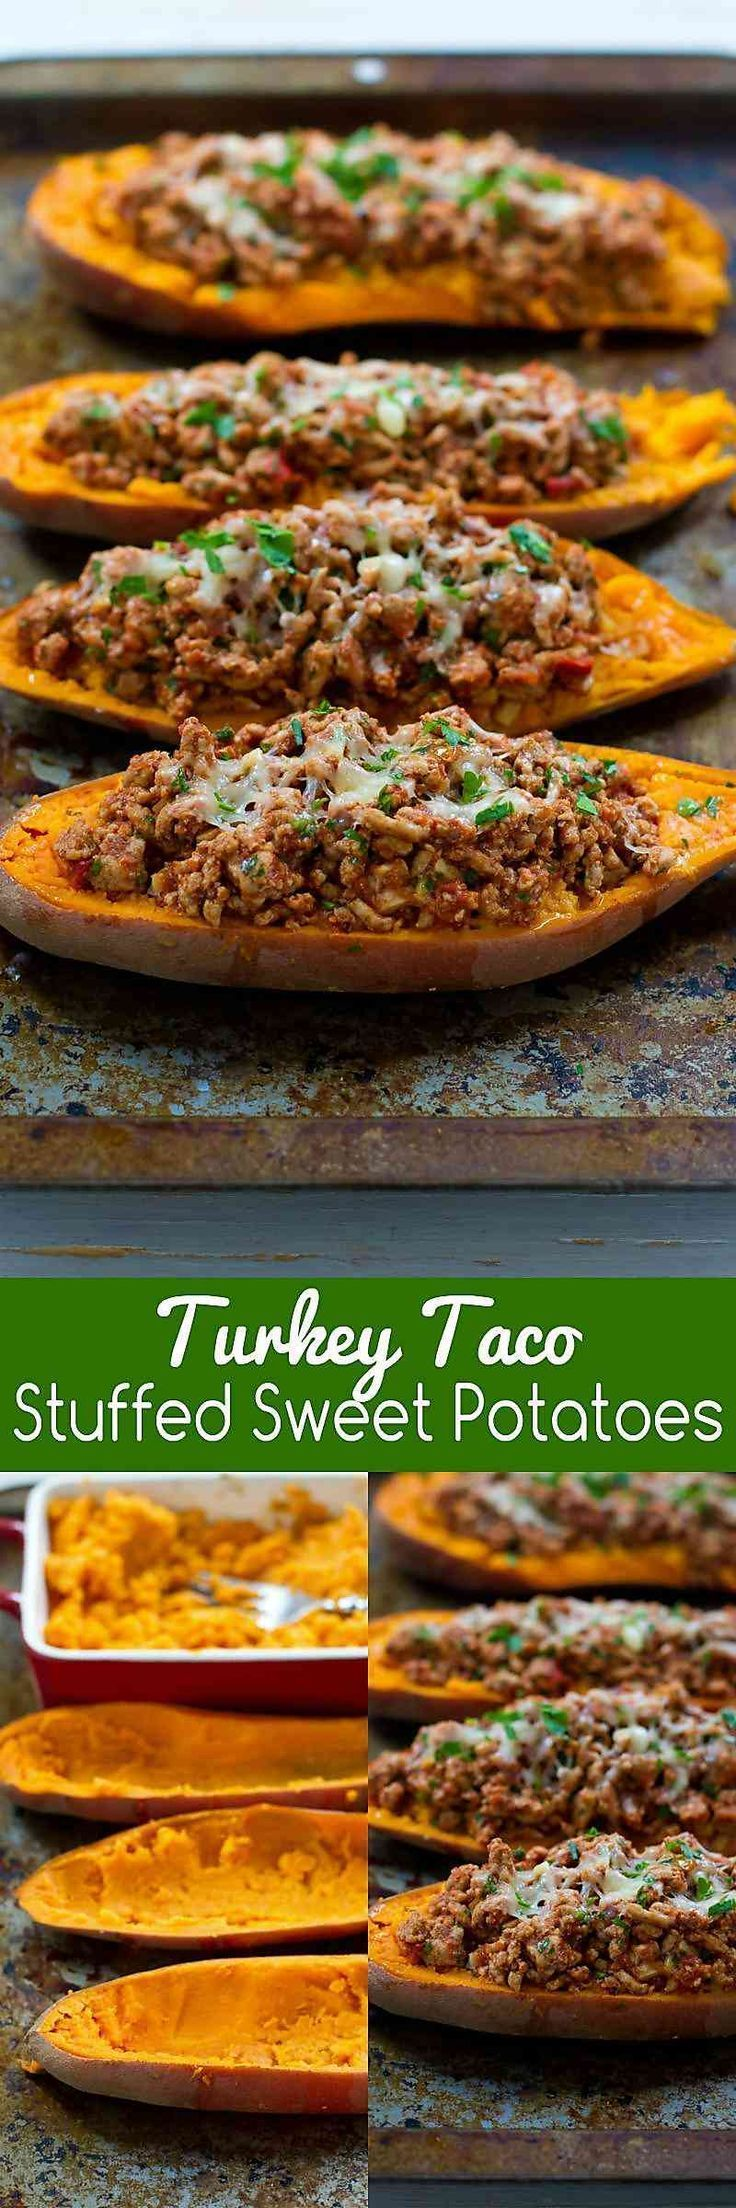 minute meal! These Turkey Taco Stuffed Sweet Potatoes are a fantastic option when you need a quick dinner recipe. 234 calories and 6 Weight Watchers SmartPoints